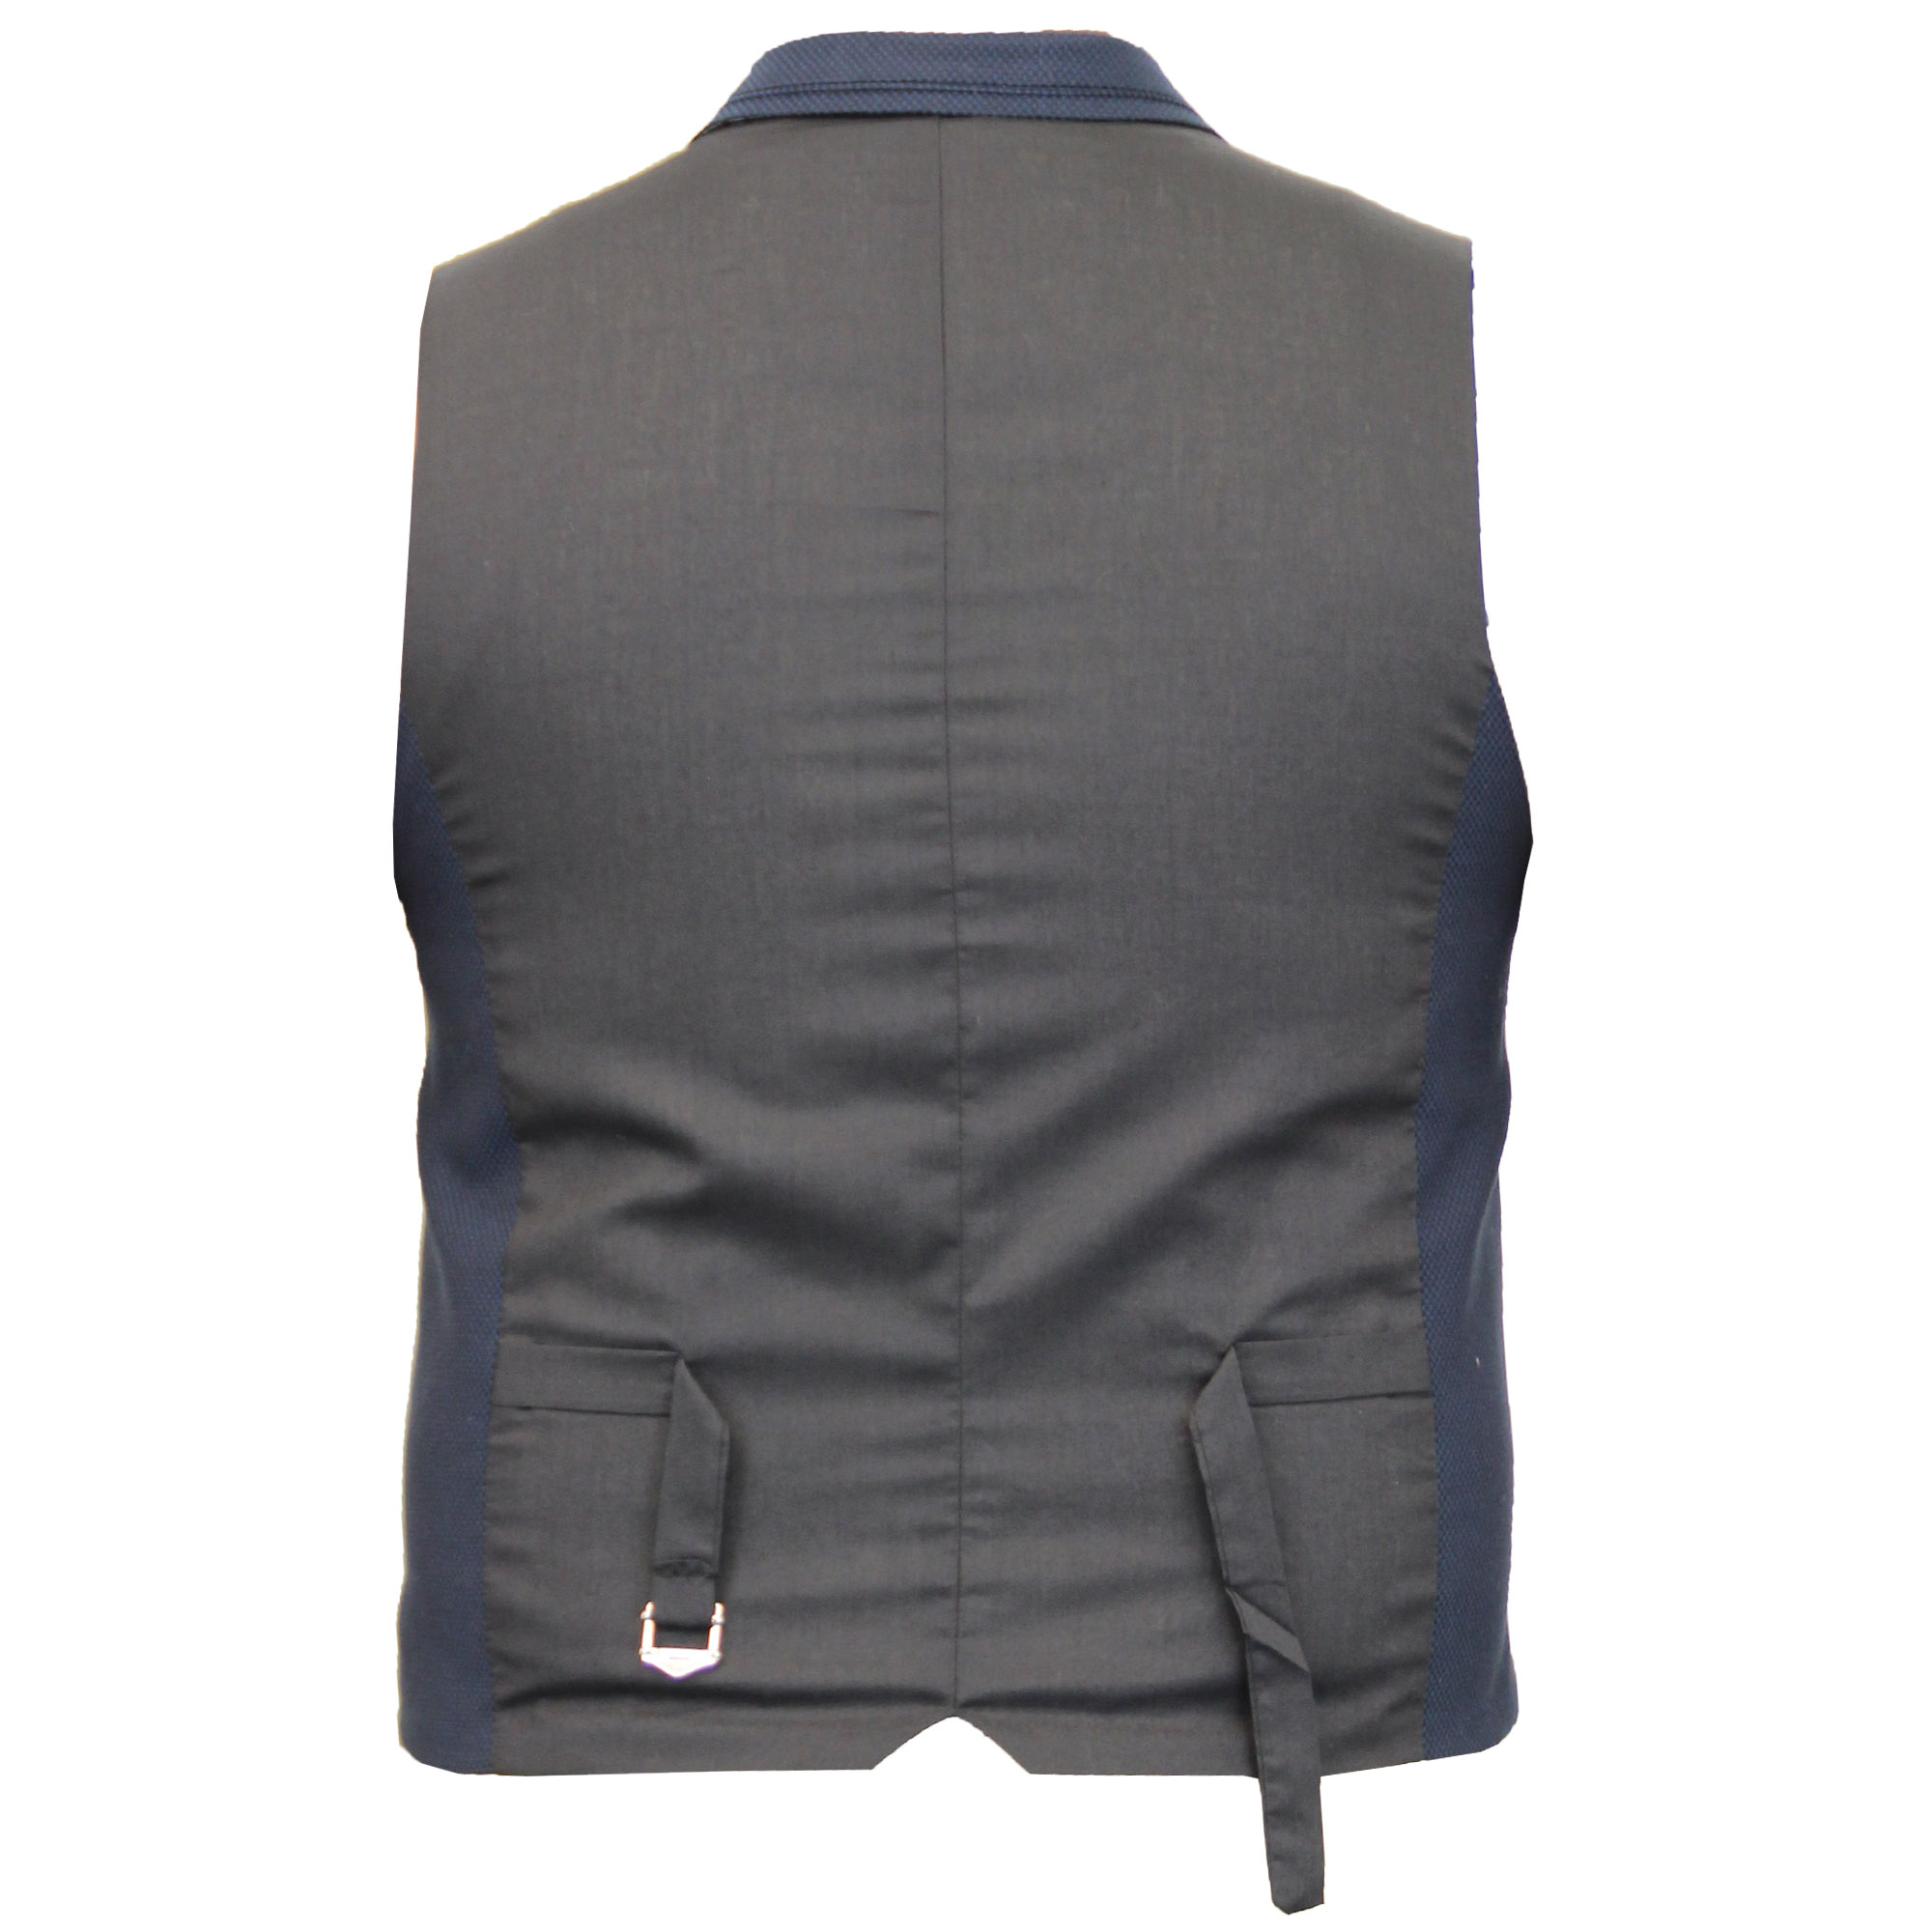 Mens-Wool-Mix-Herringbone-Tweed-Formal-Vest-Check-Waistcoat-By-Cavani-Crespo thumbnail 9